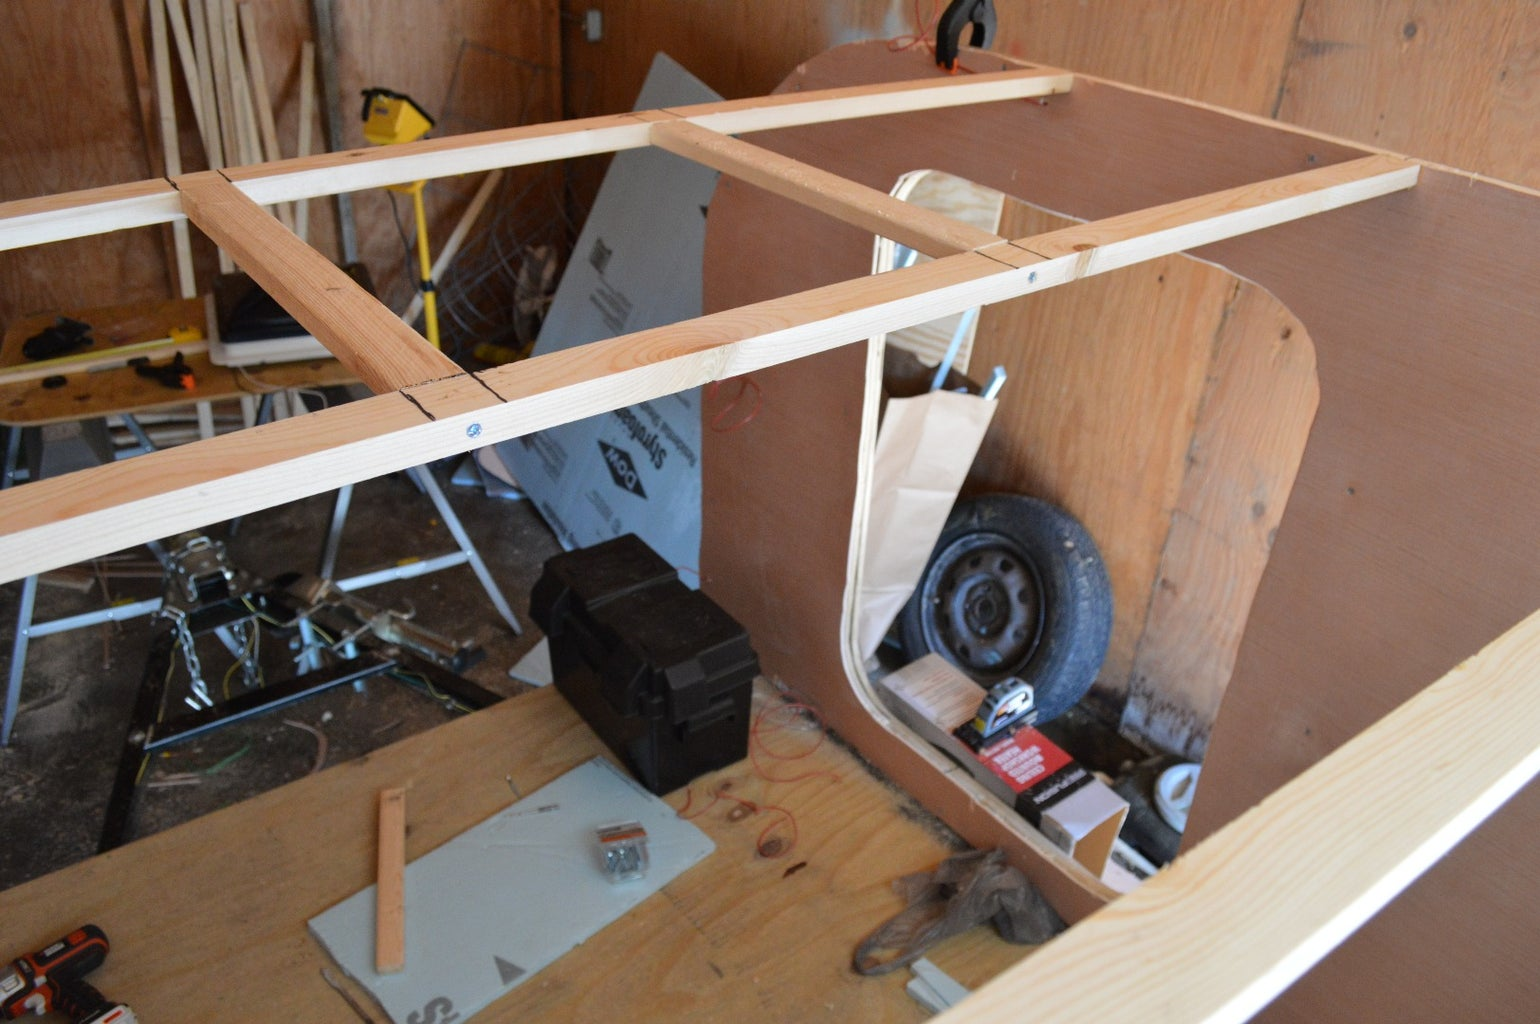 Wood Spars for the Roof Supports